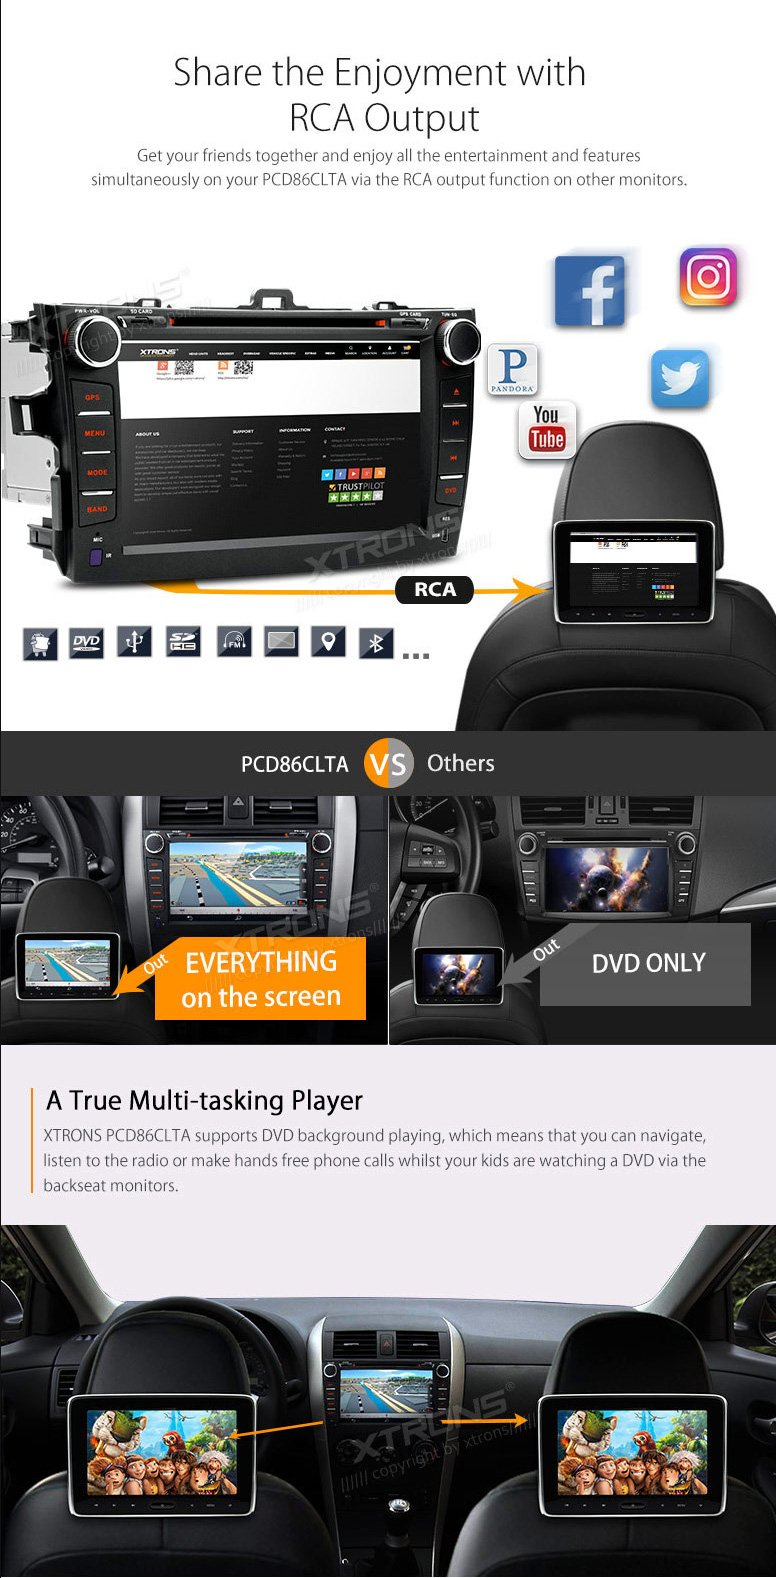 XTRONS 8'' Android 6.0 HD Digital Multi-touch Screen 1080P Video Car DVD Player Custom Fit for Toyota Corolla 2007-2011